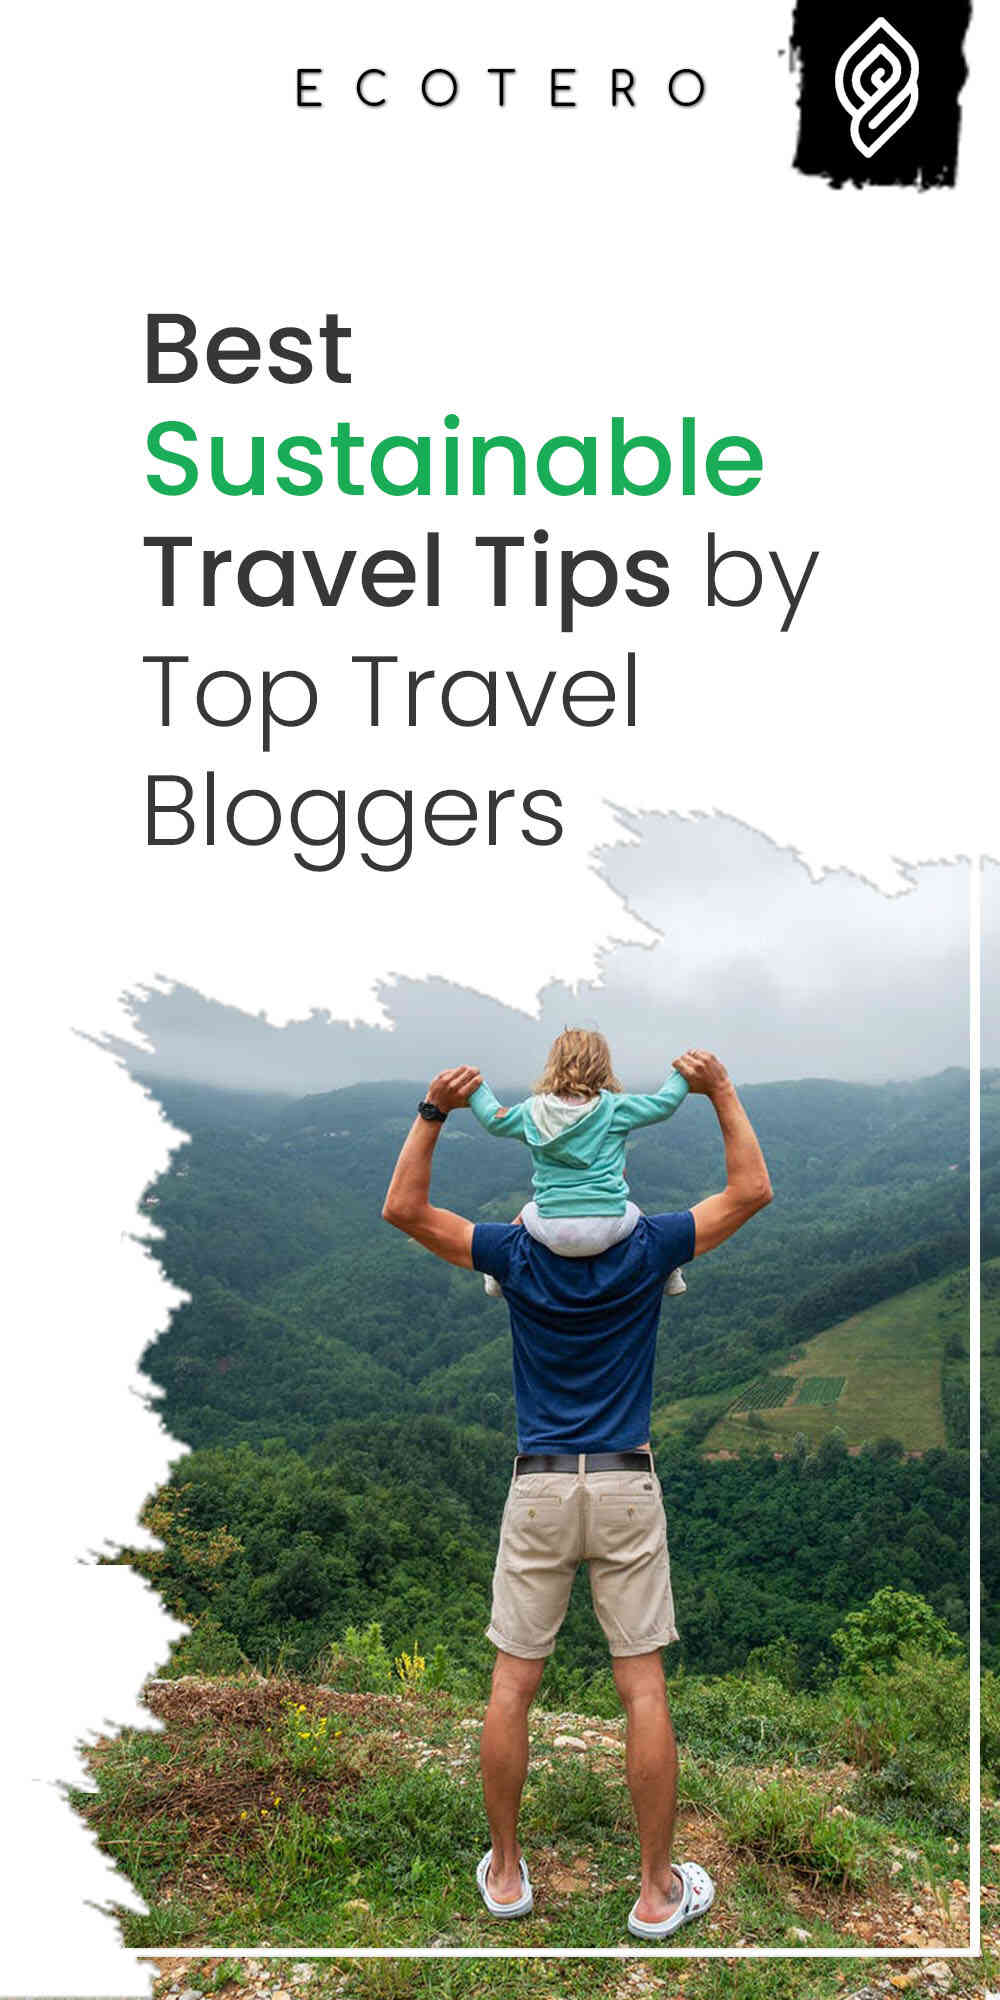 Best-Sustainable-Travel-Tips-by-Top-Eco-Friendly-Travel-Blogs